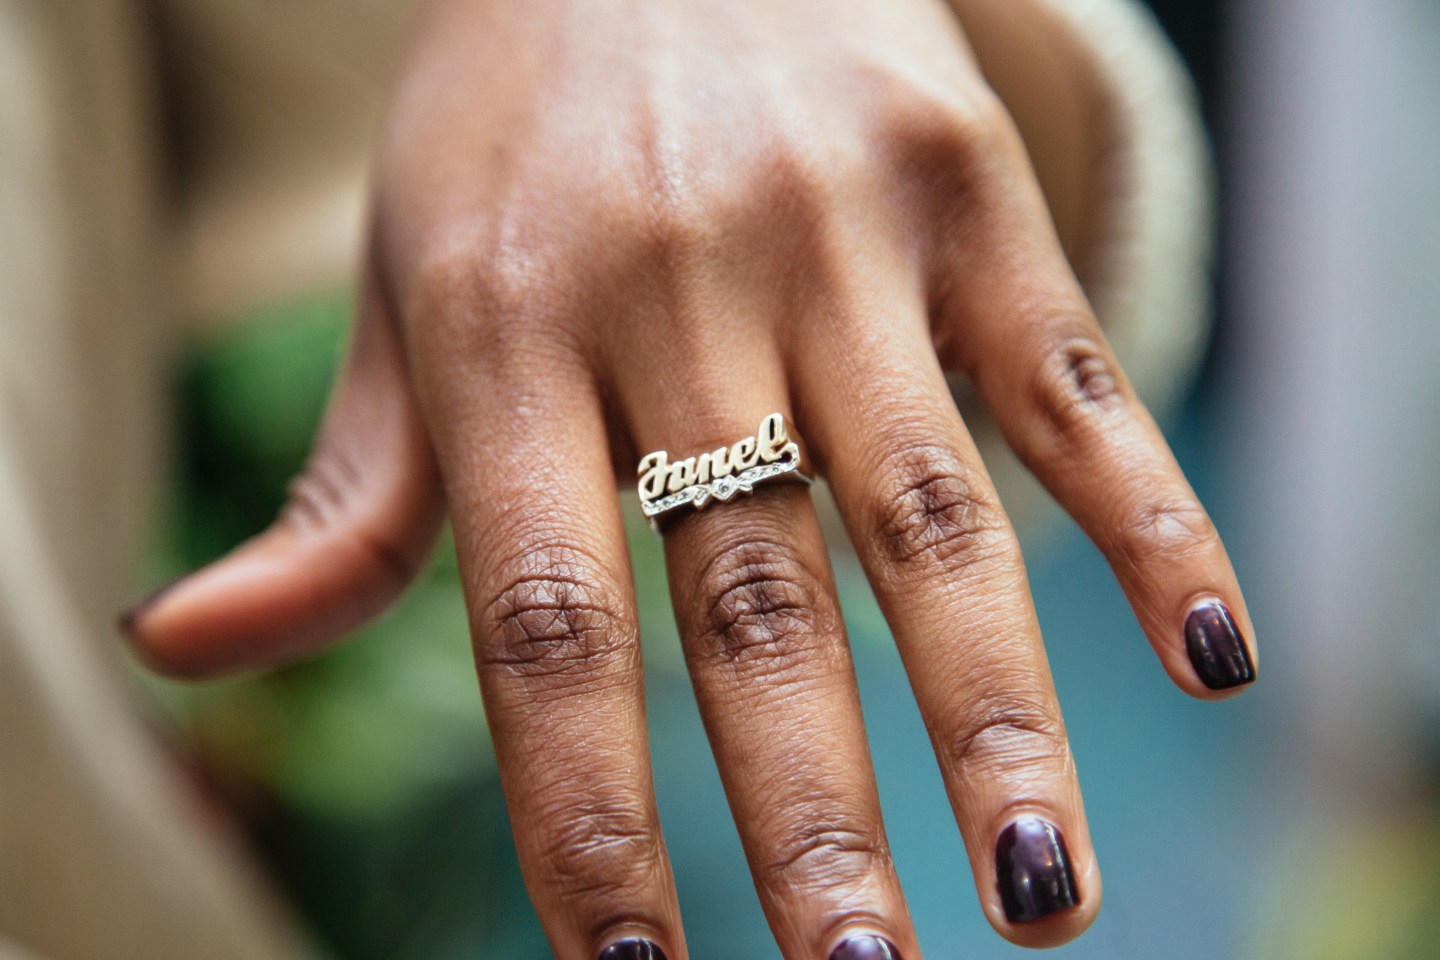 Documenting the rich cultural history of nameplate jewelry